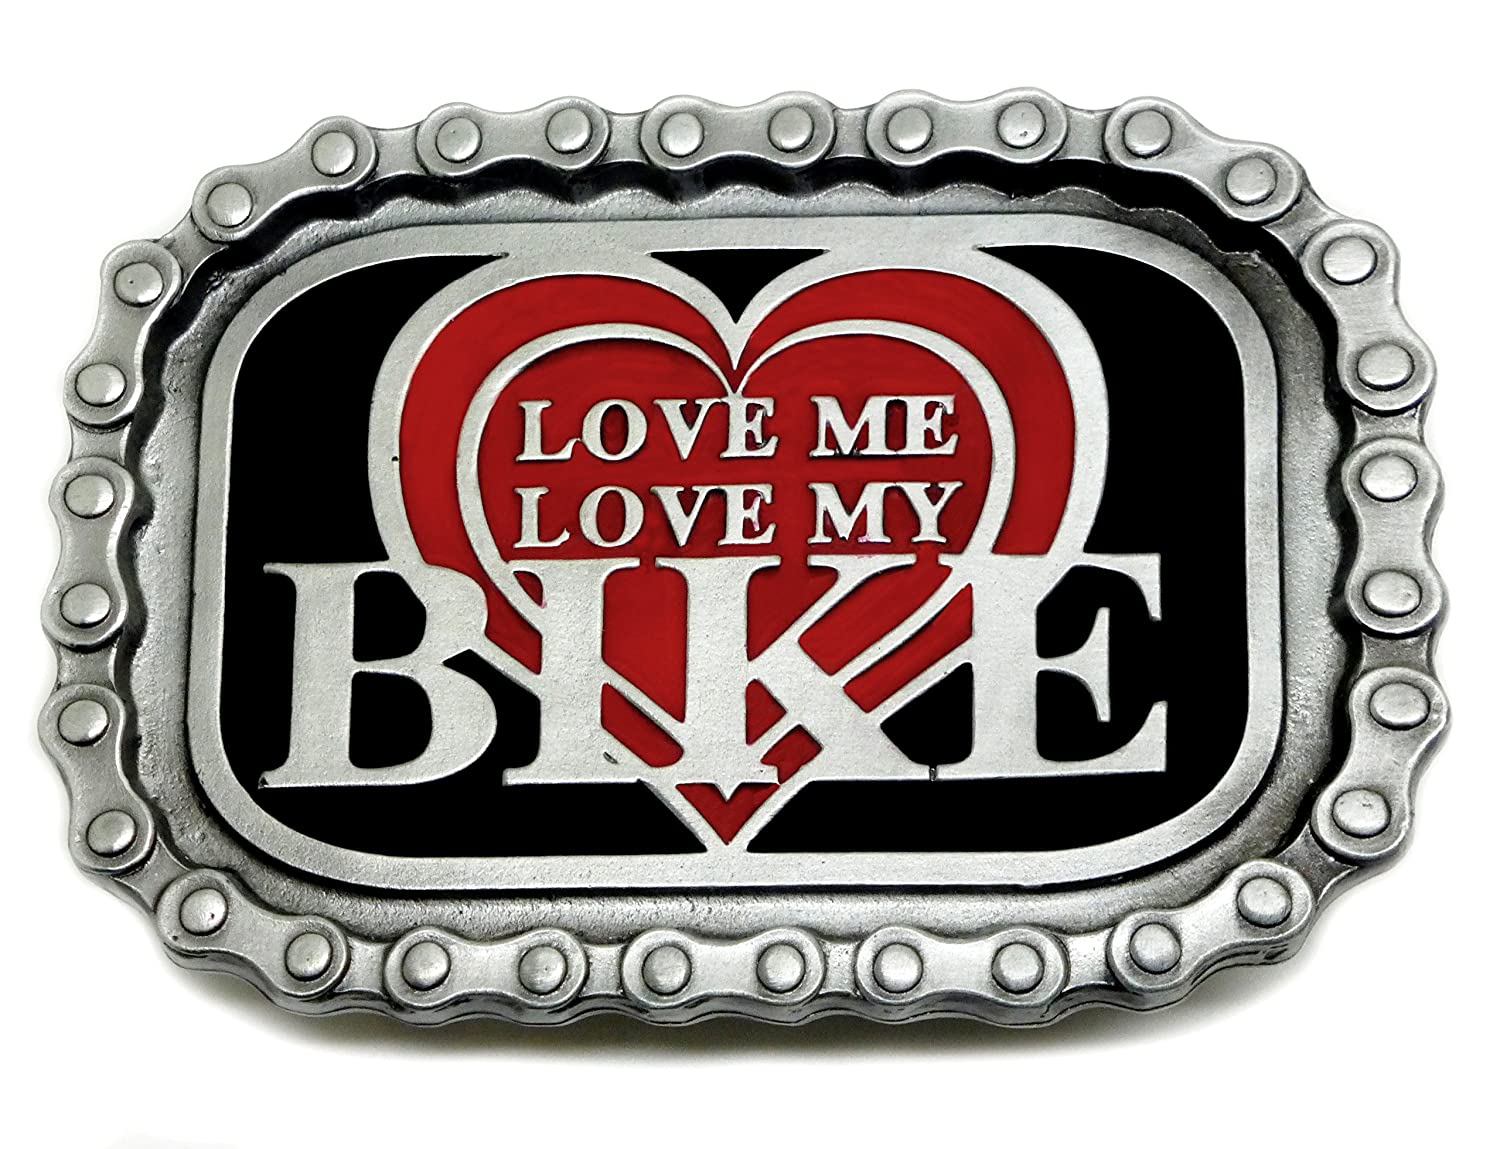 Biker Belt Buckle Love Me Love My Bike Heart & Chain Border Authentic Bulldog Buckle Co Branded Product TAN 412